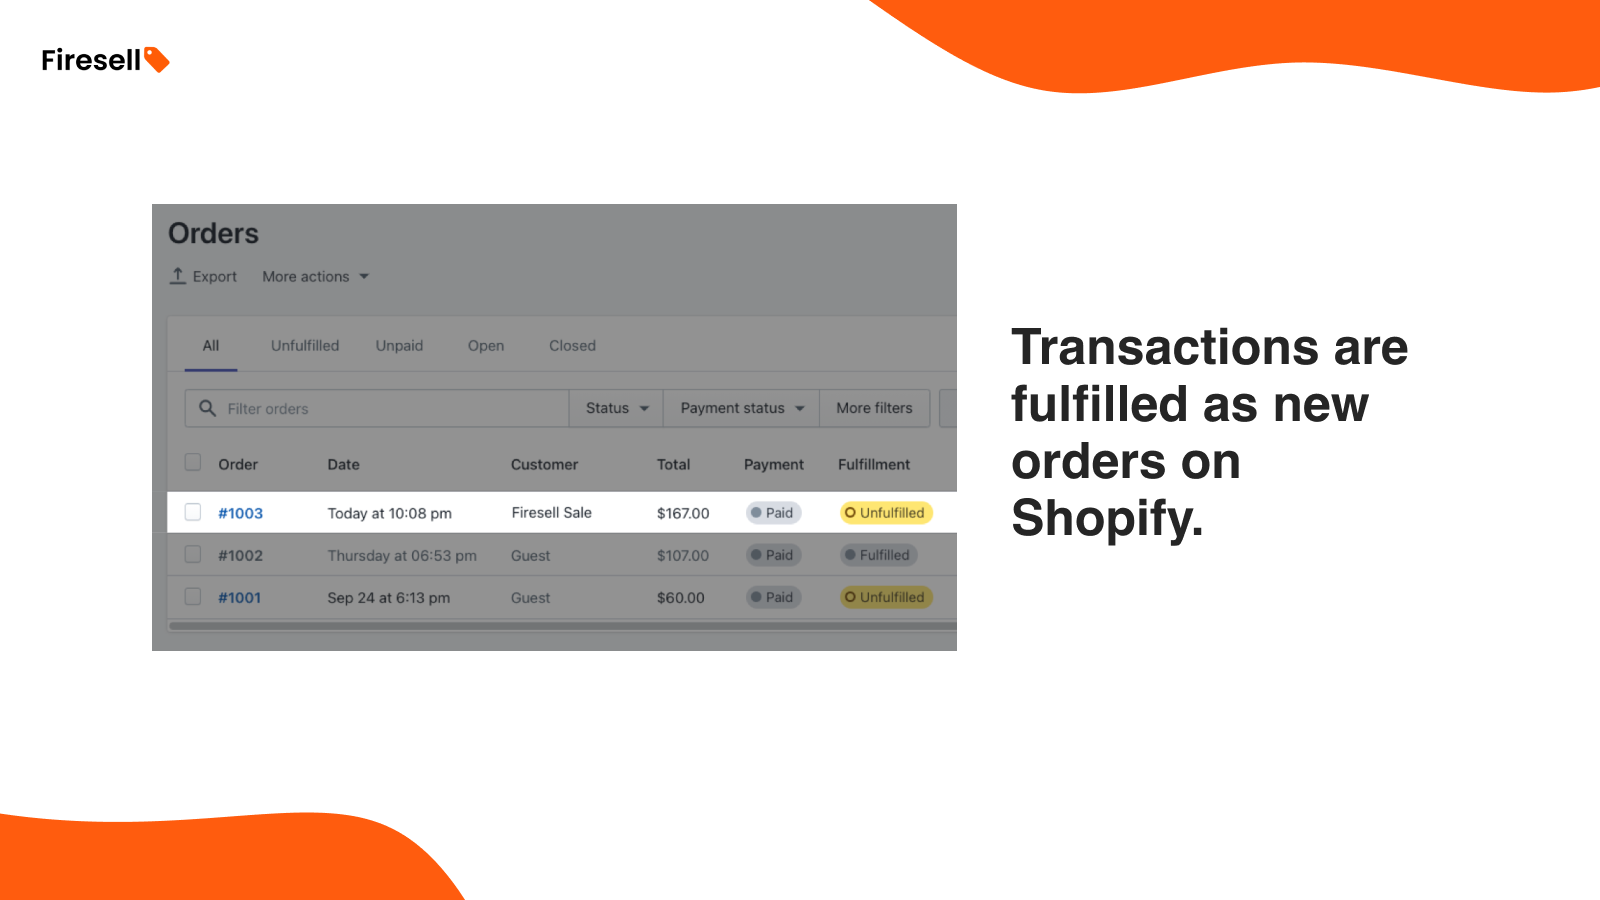 Transactions are fulfilled as new orders on Shopify